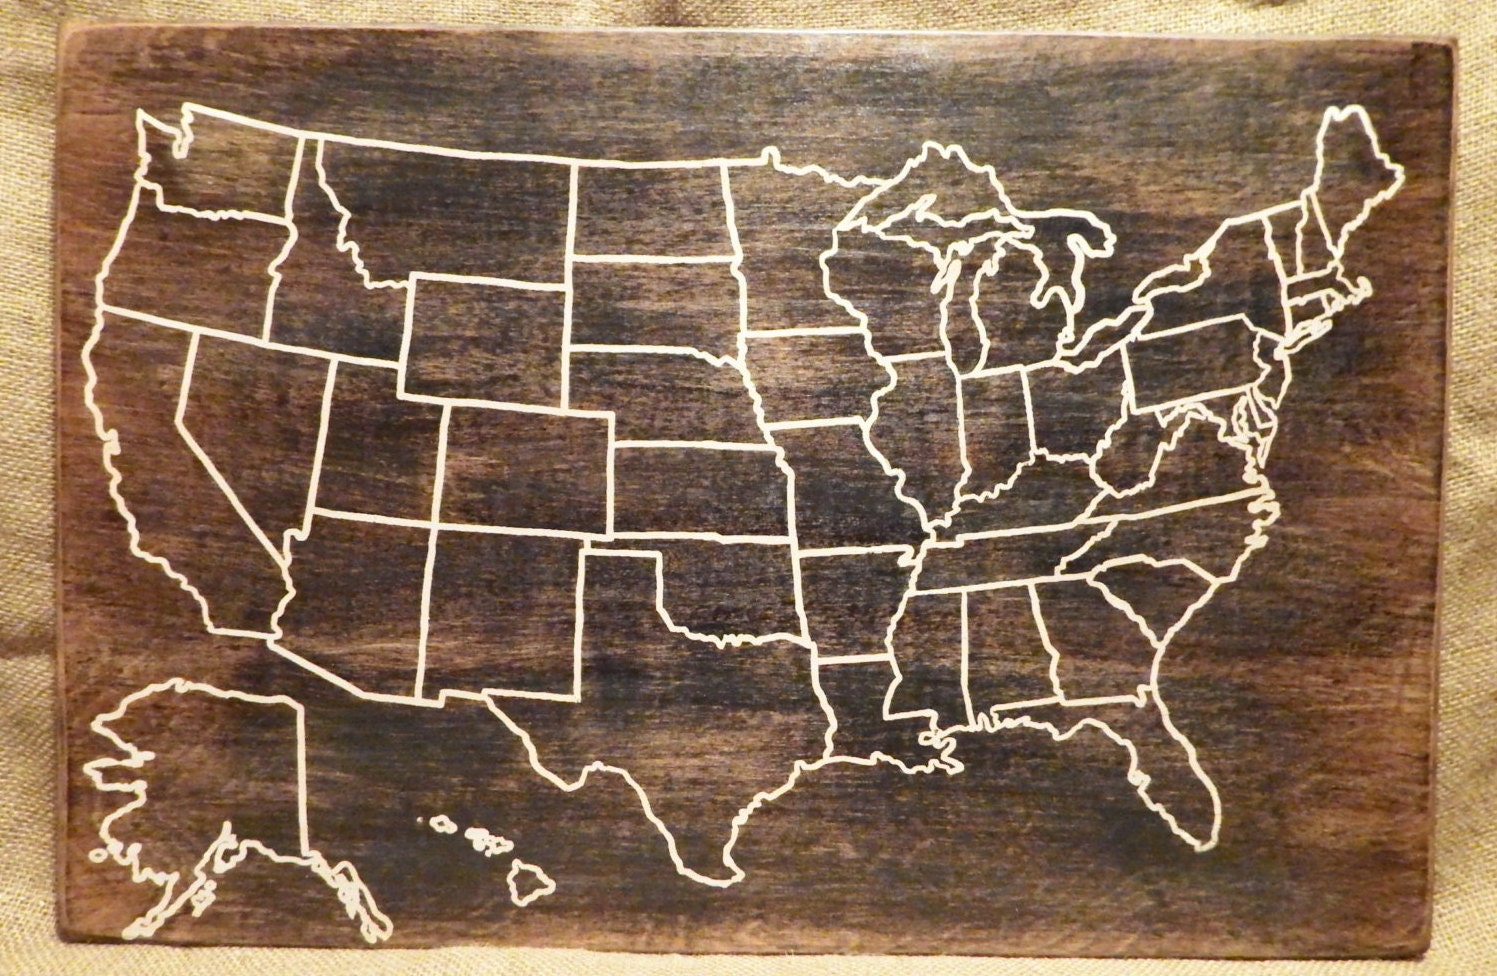 Us Map Etsy - Images for map of usa